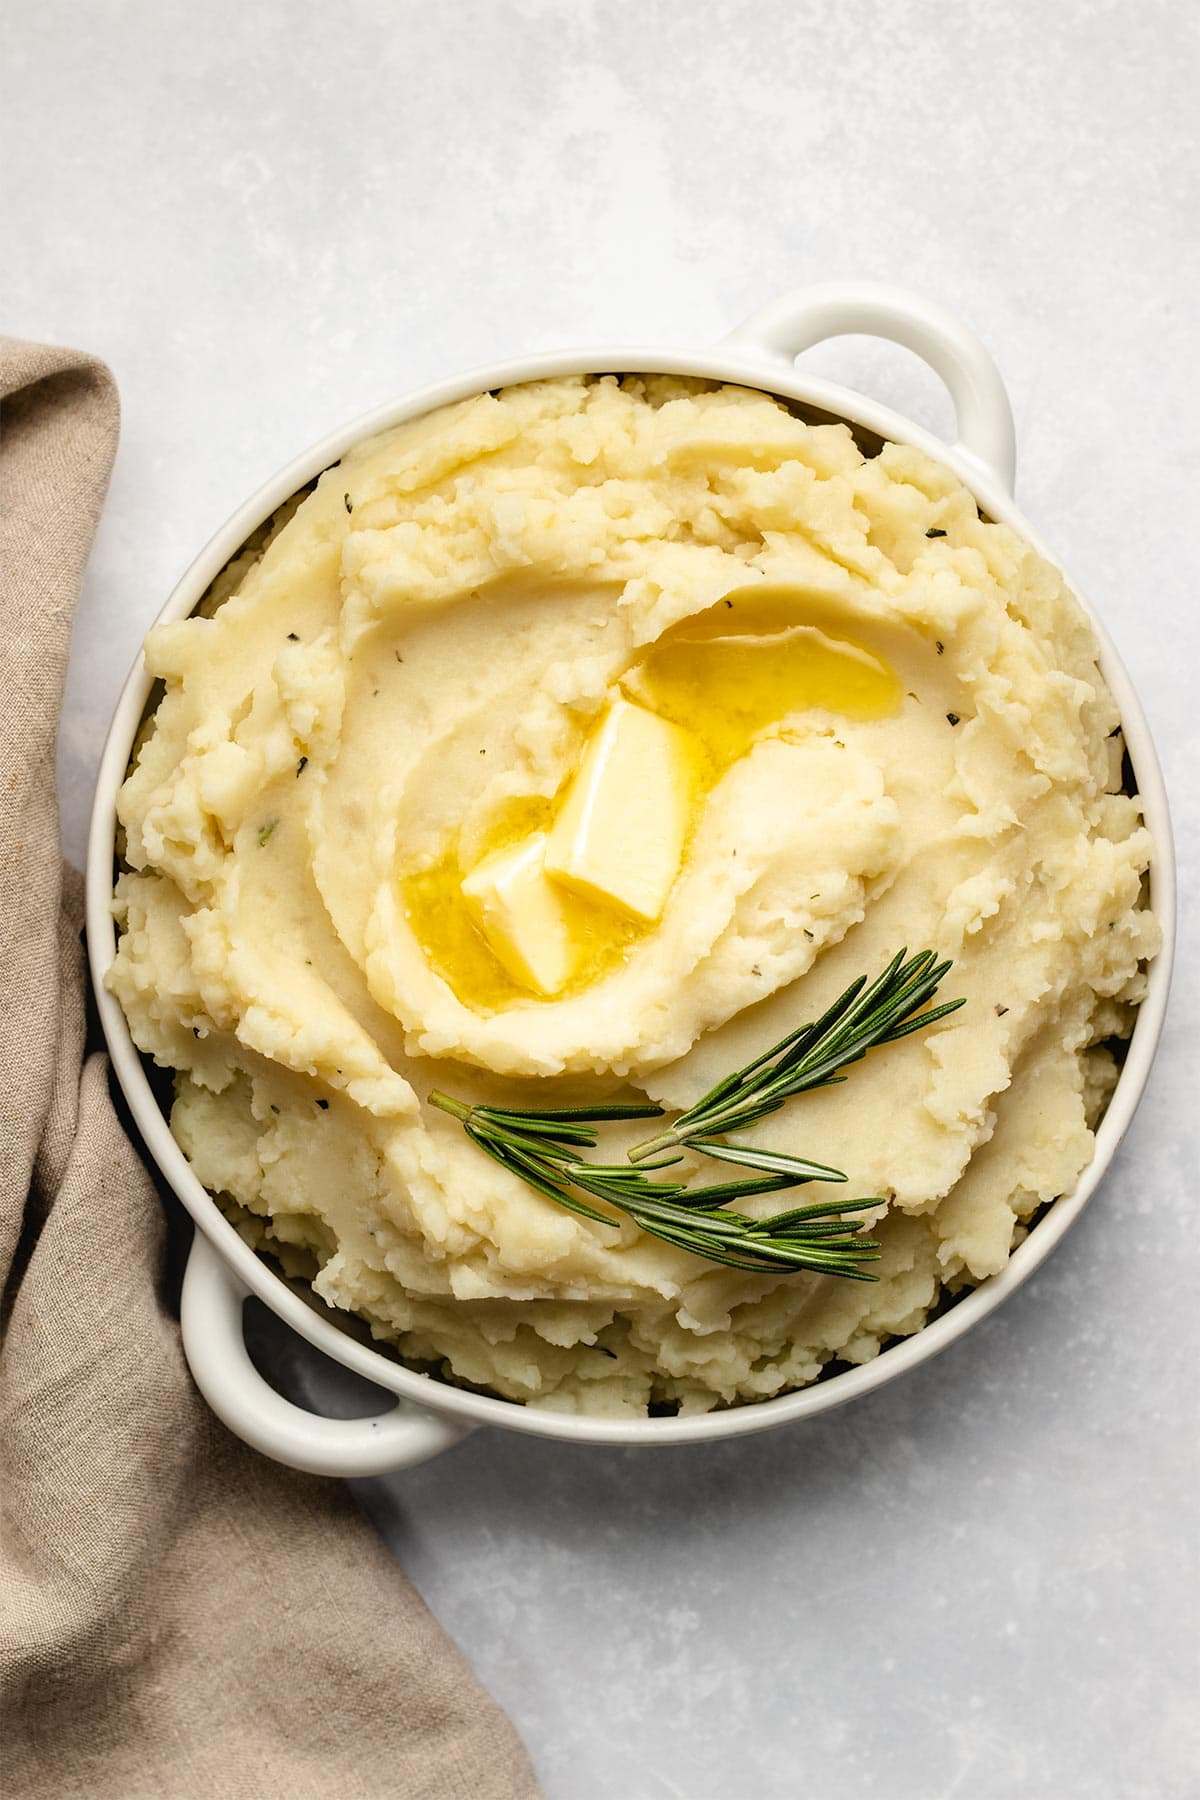 Garlic Rosemary Mashed Potatoes in a white bowl